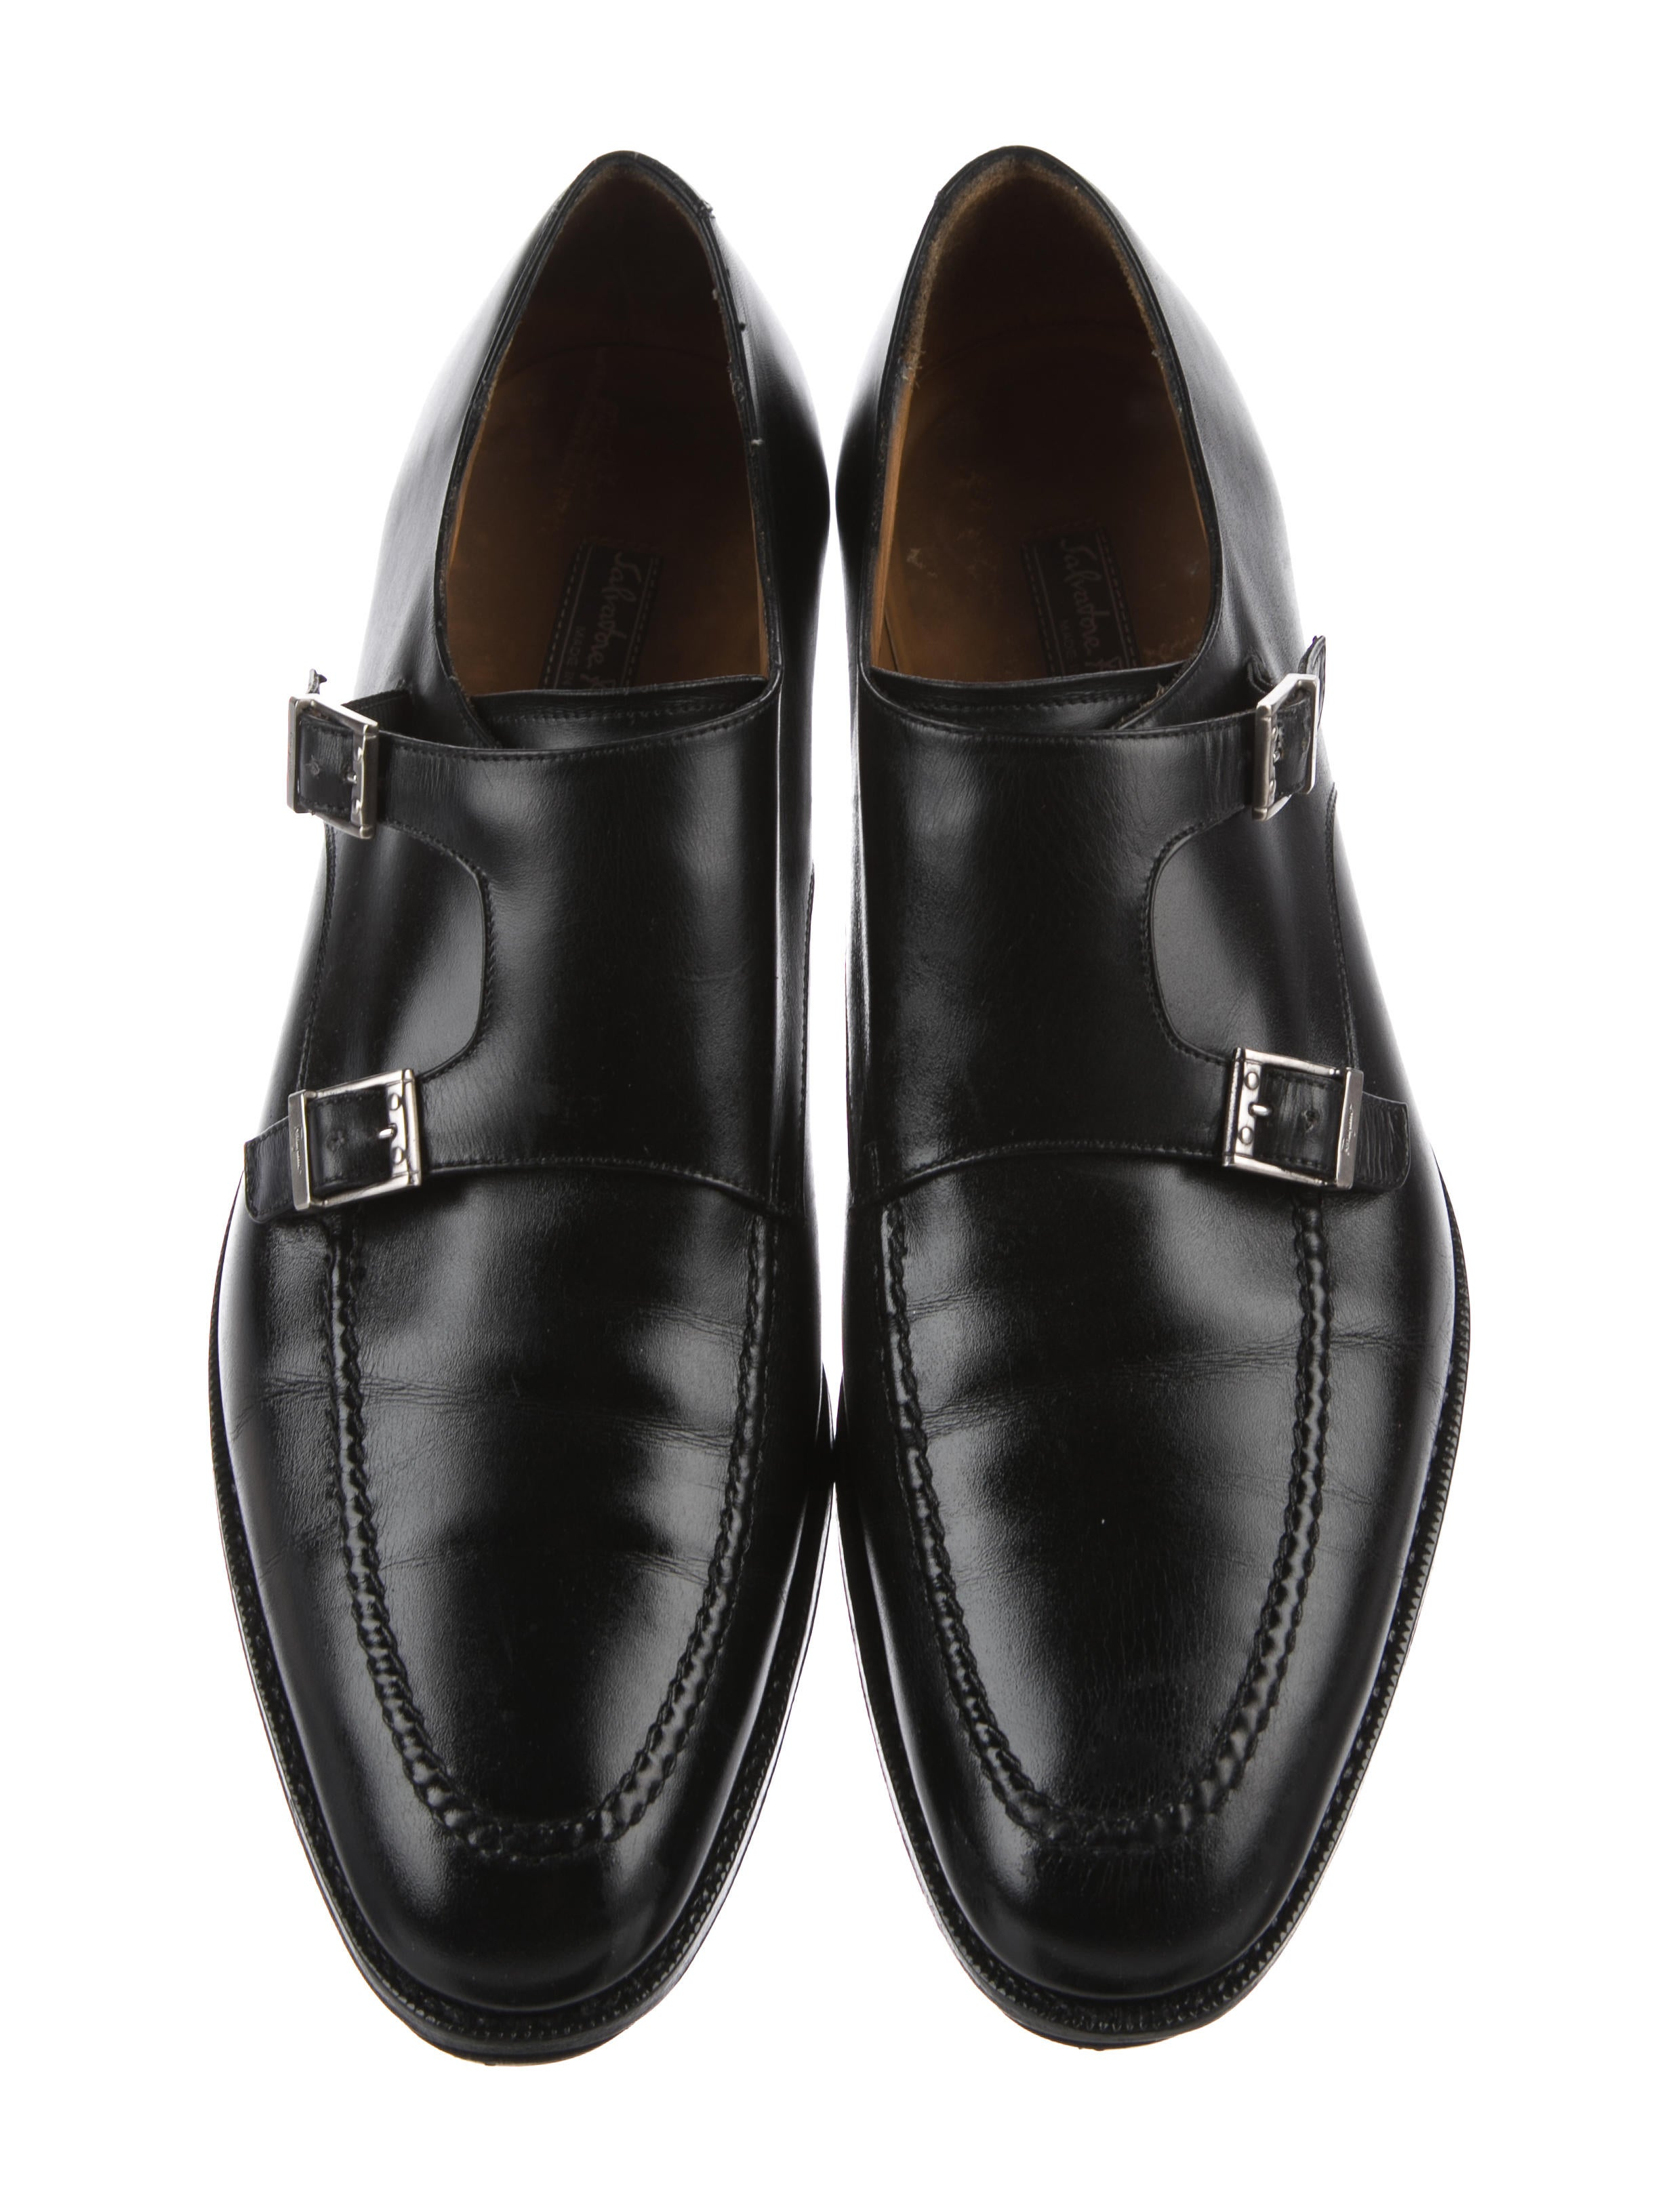 What To Wear With Black Monk Strap Shoes